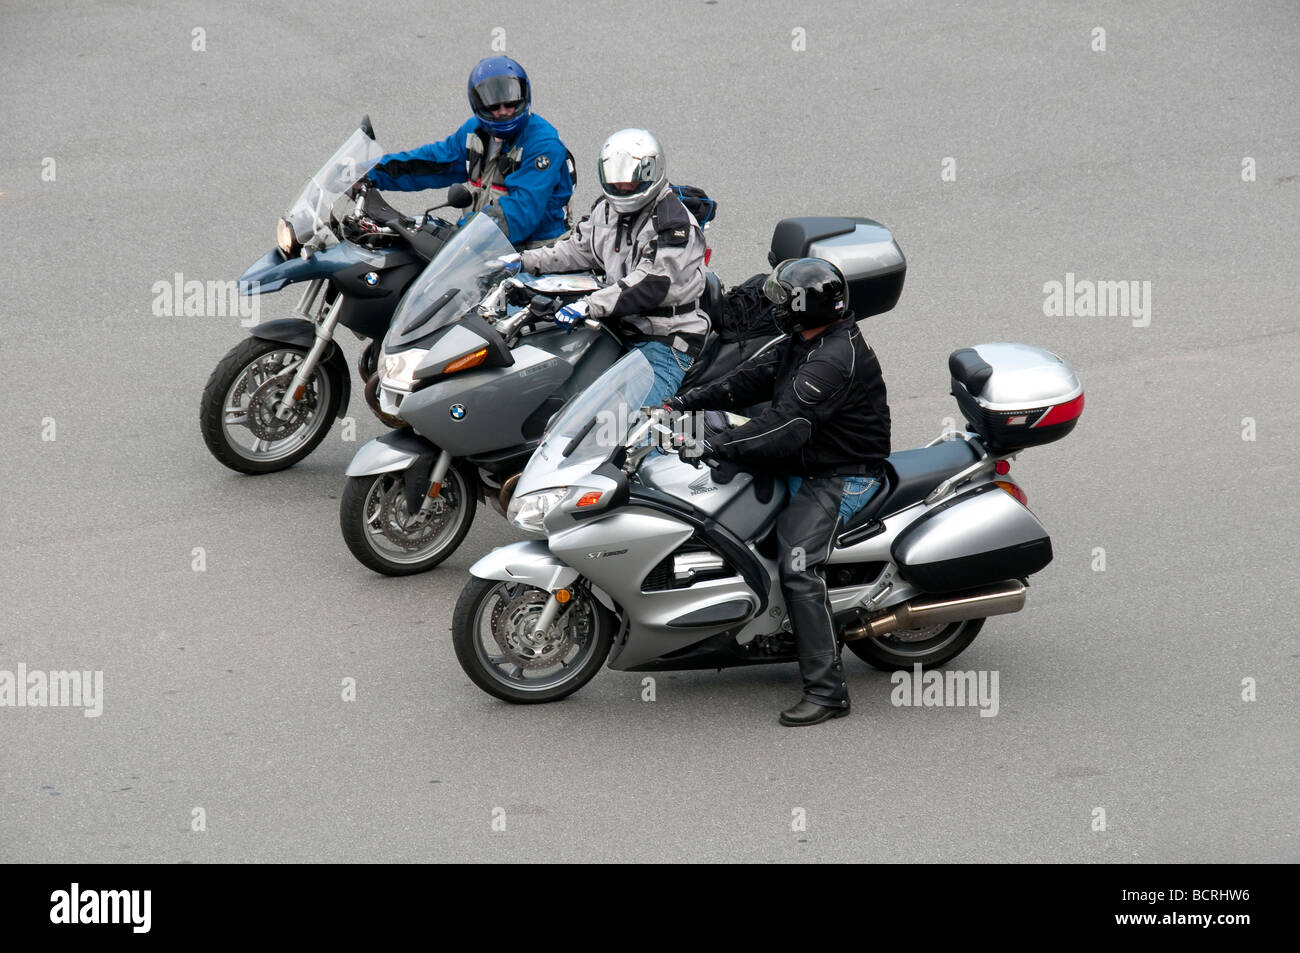 Three bikers. - Stock Image